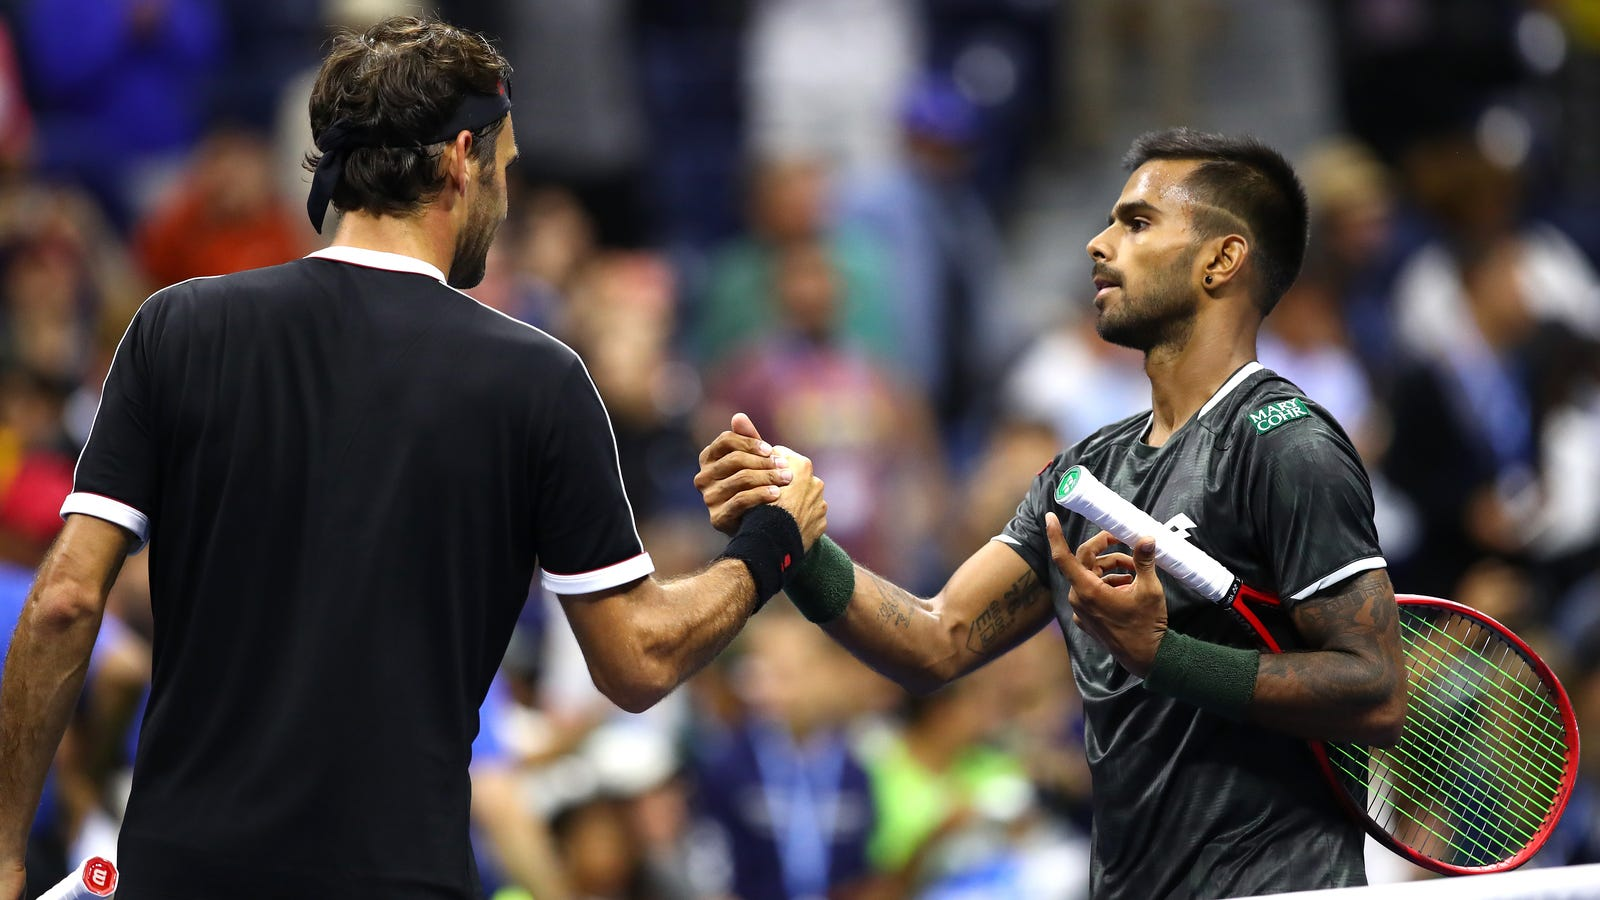 Sumit Nagal, Who Is Not Rafael Nadal, Gave Roger Federer A Brief Scare